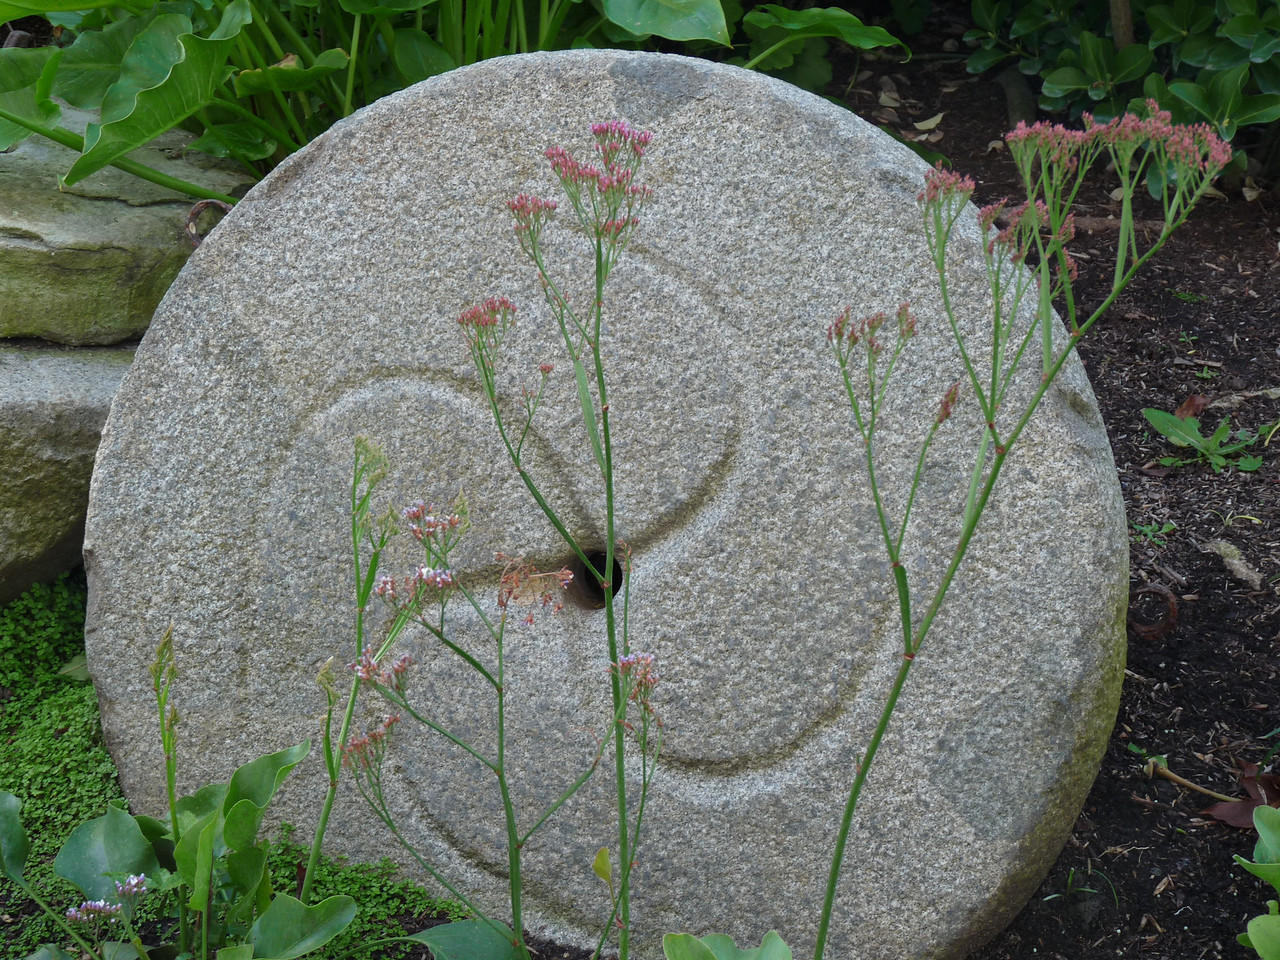 close up of one of the grindstones